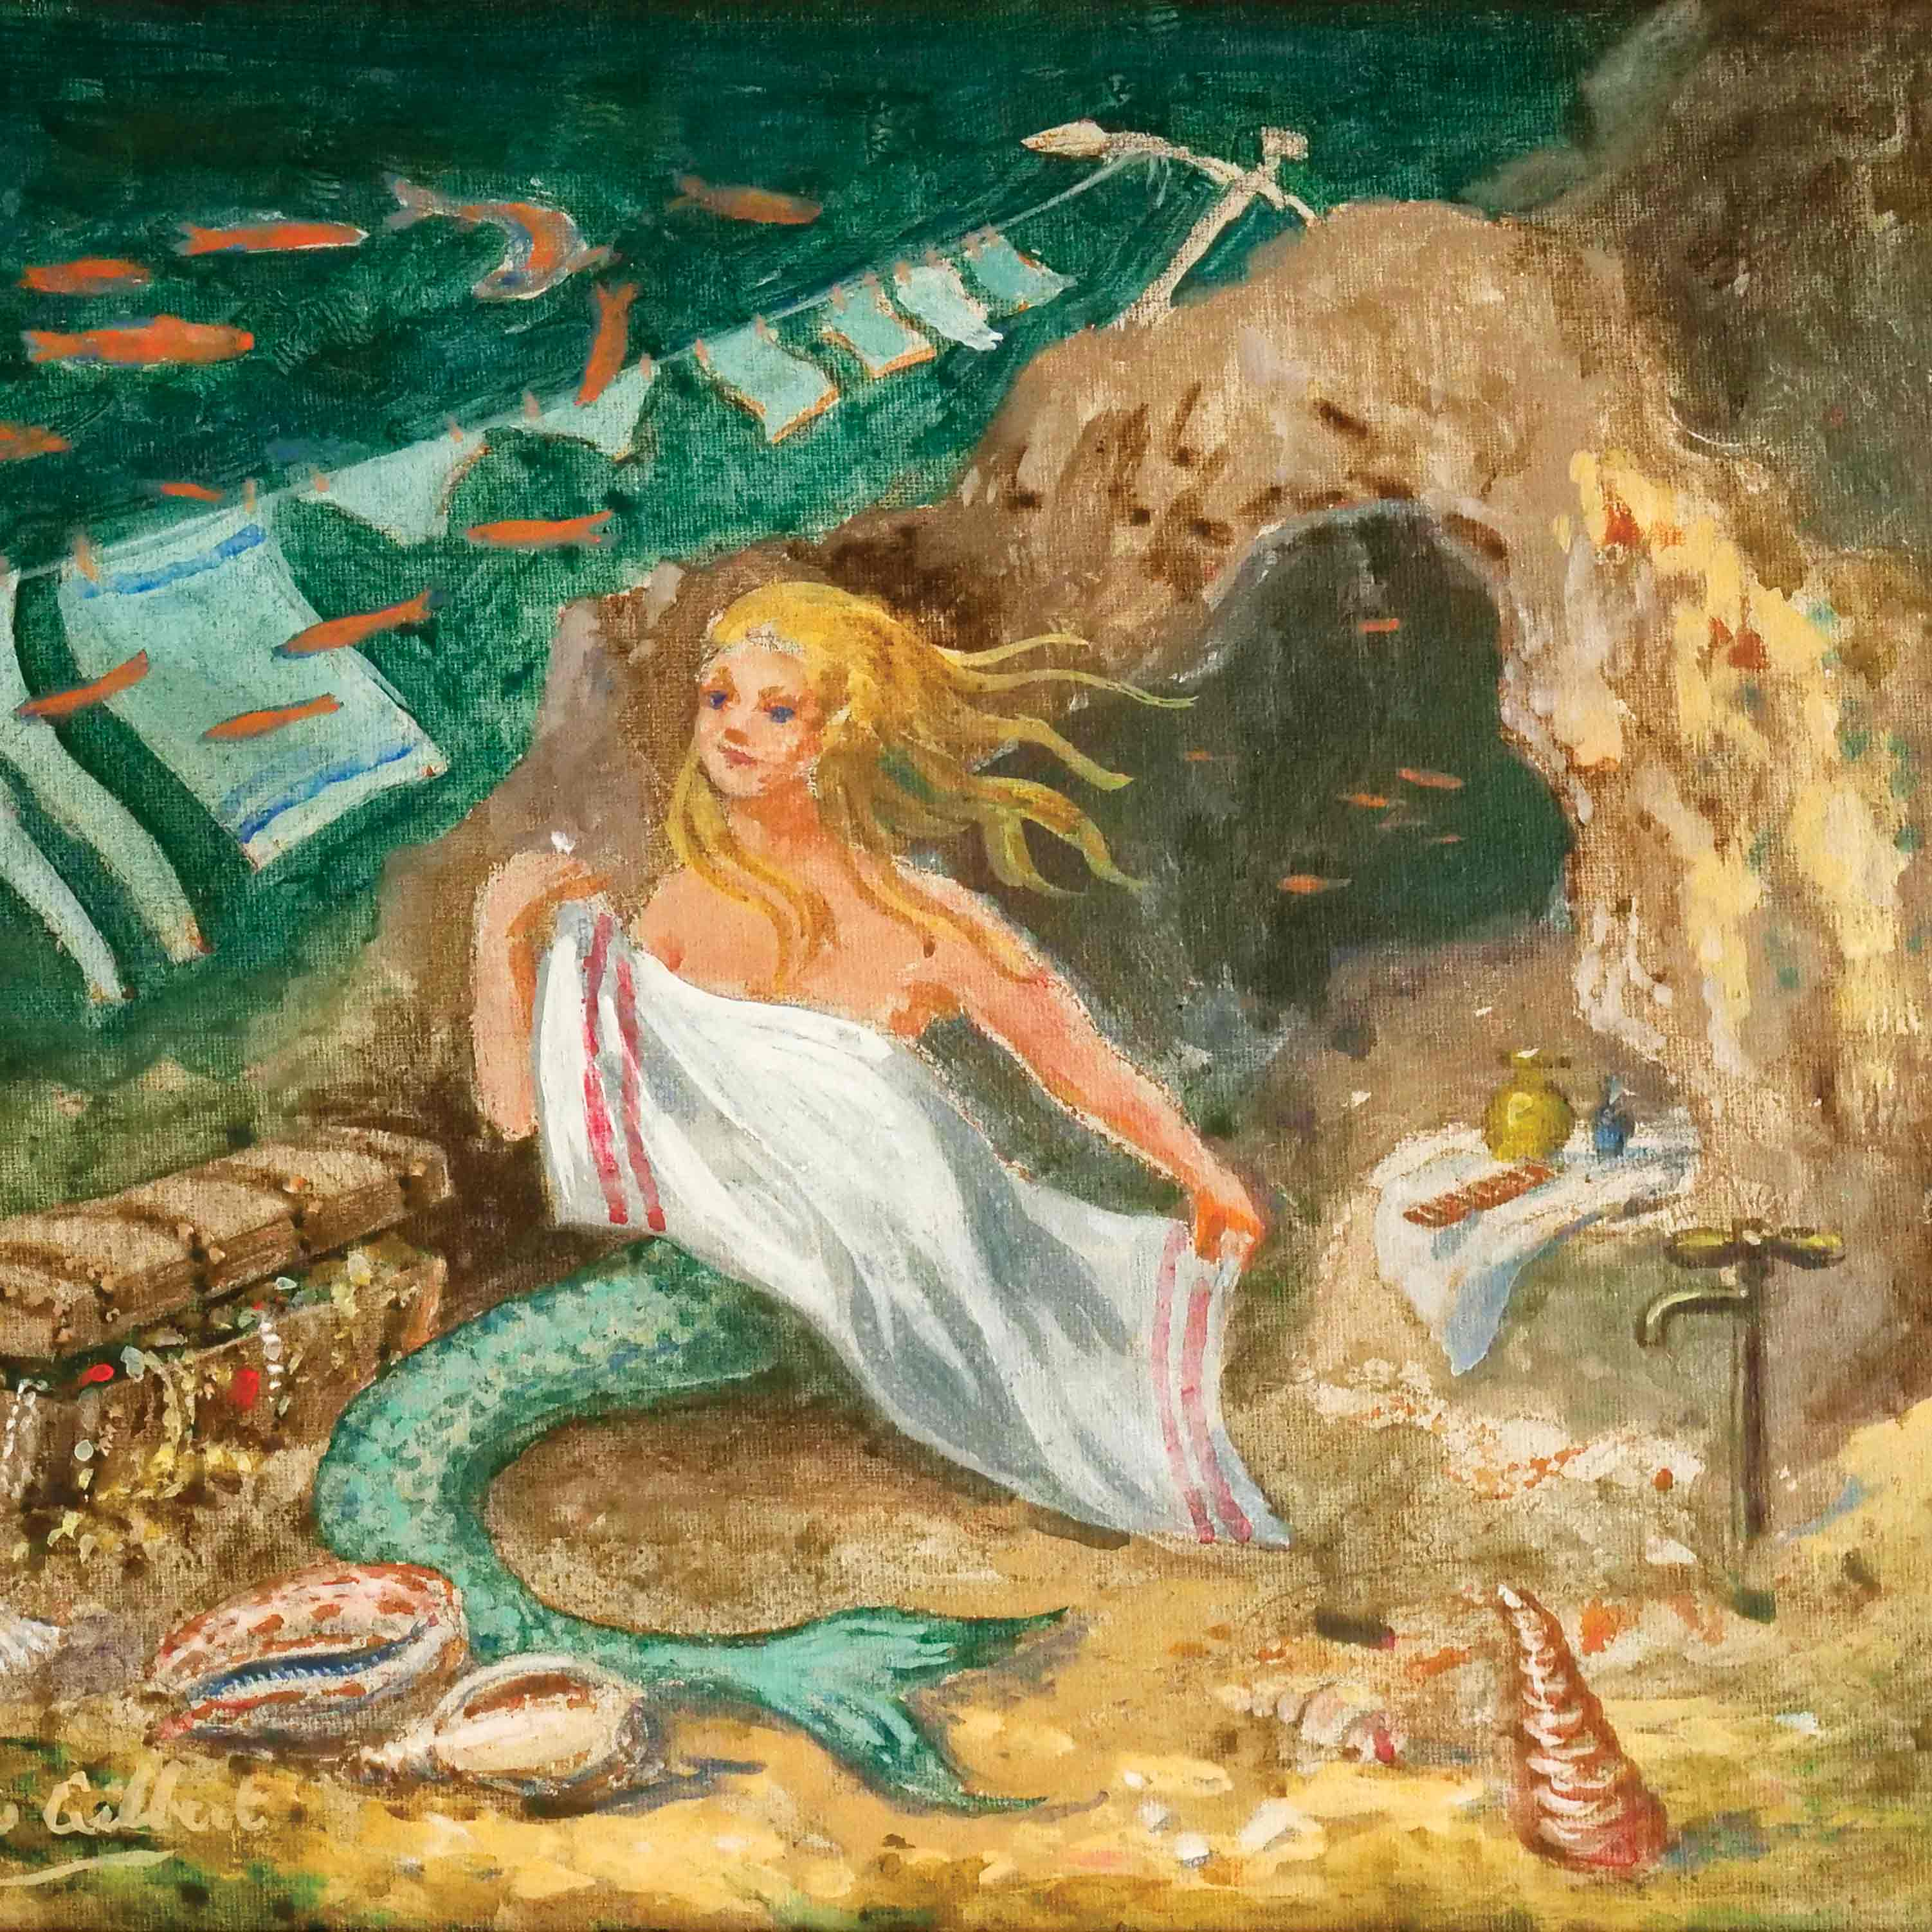 Art Greeting Card by Dennis Gilbert, A Drying Problem, Oilpainting, Mermaid drying herself with towel under the sea